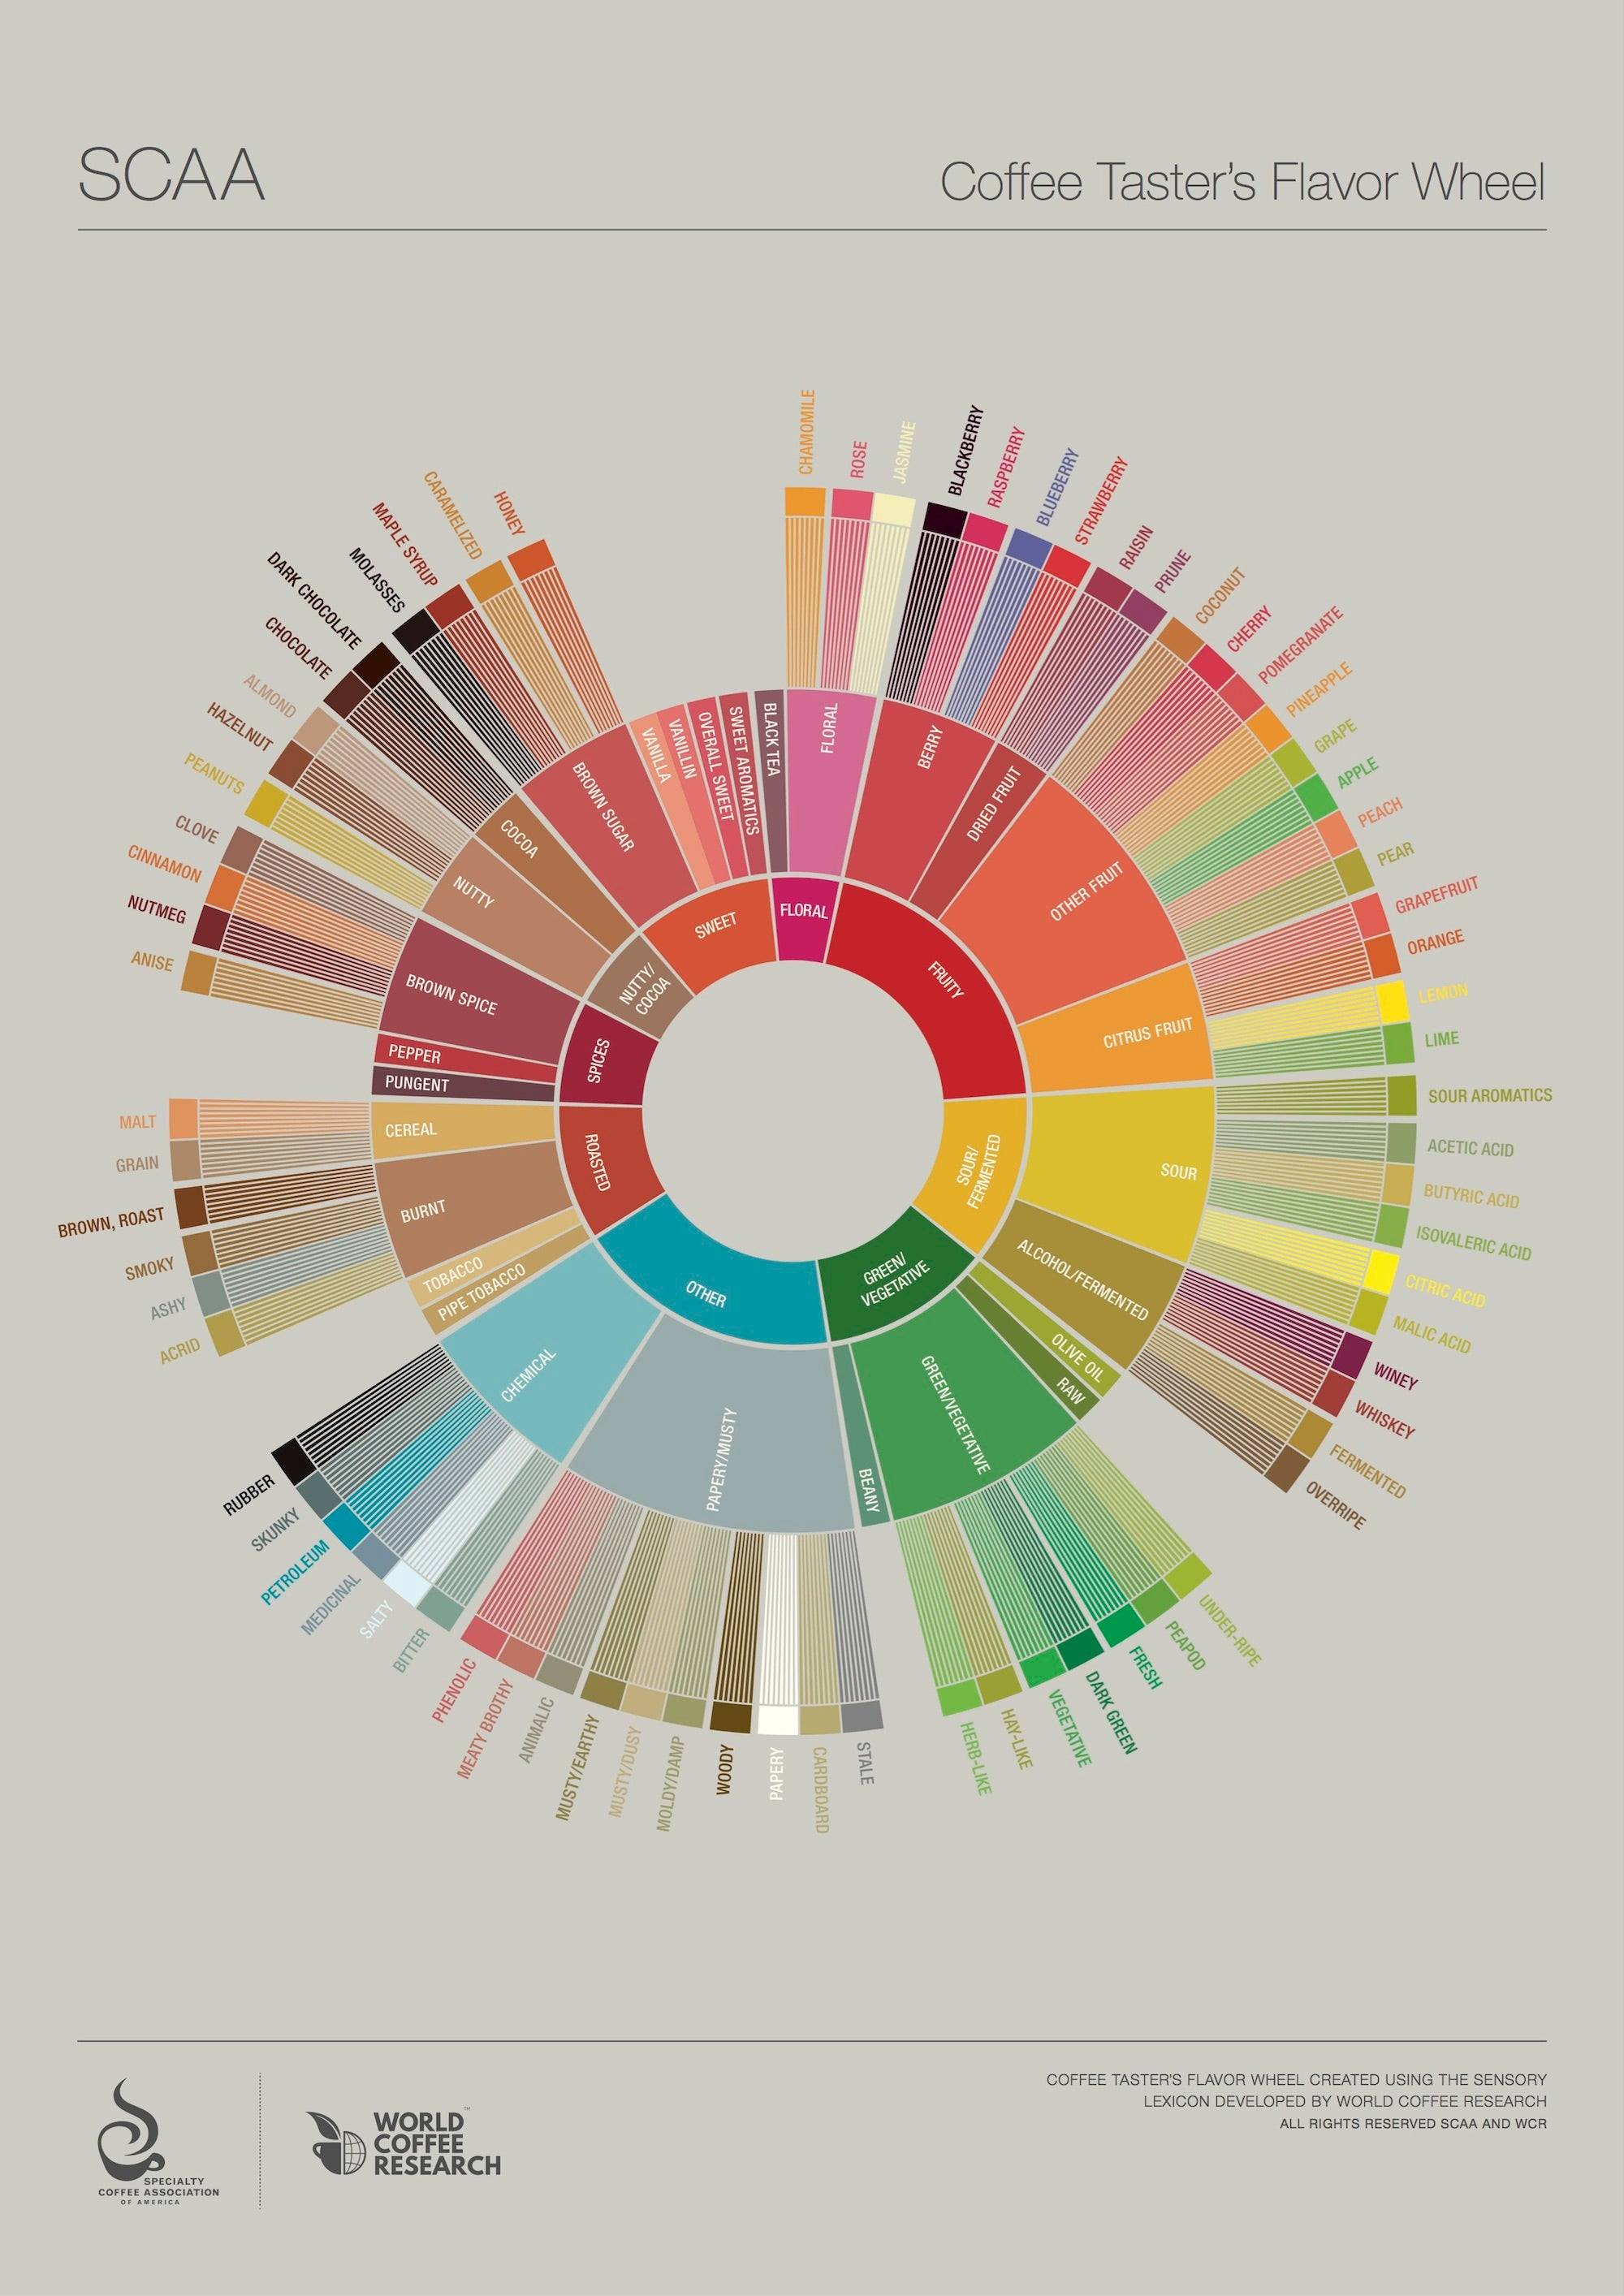 Explore The Flavours In Your Coffee With This Tasting Wheel [Infographic]